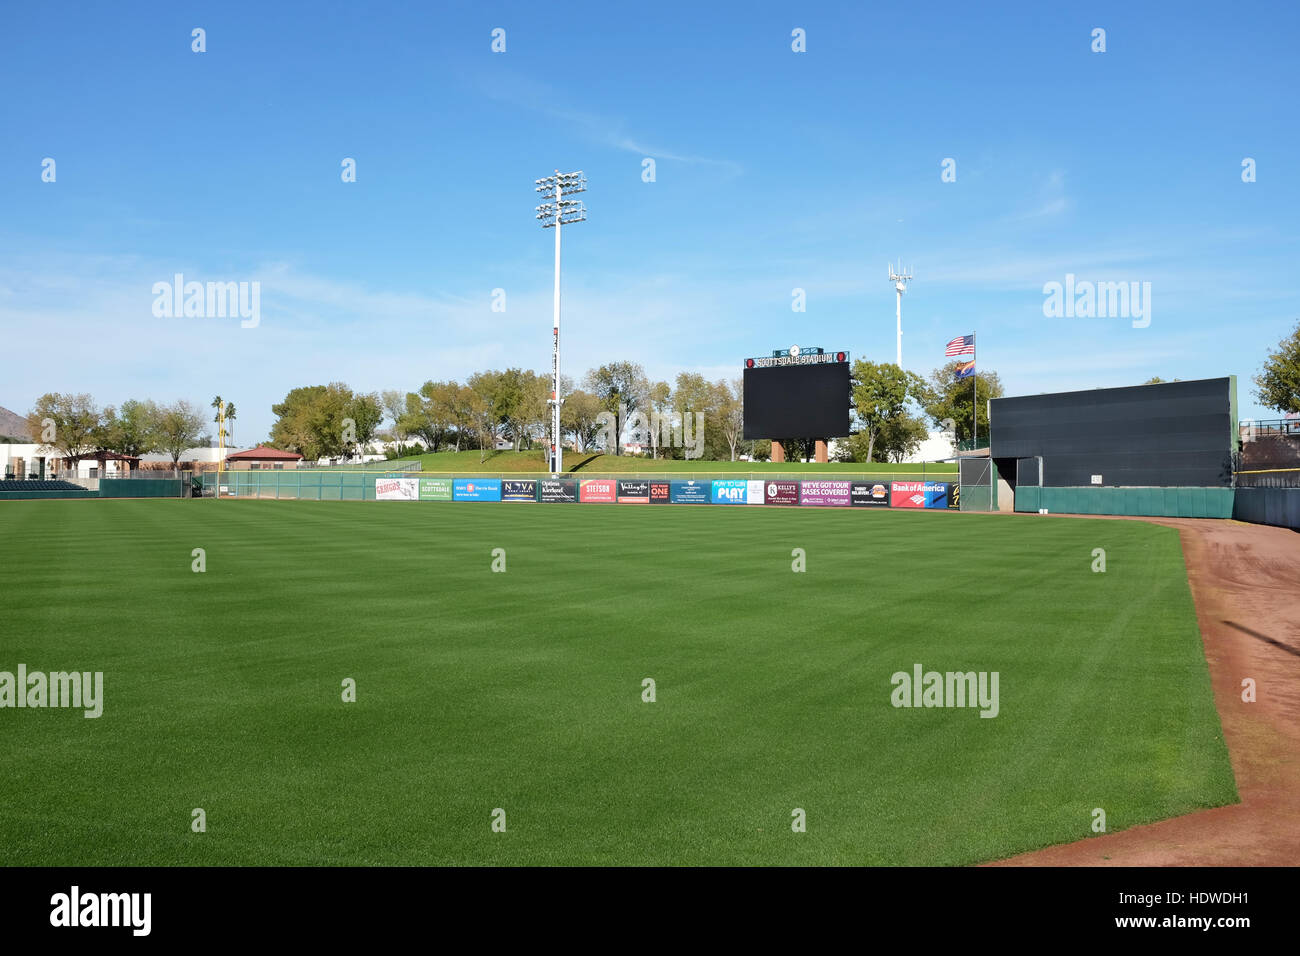 Scottsdale Stadium Looking across the outfield grass. The stadium is the Spring Training home of the San Francisco - Stock Image